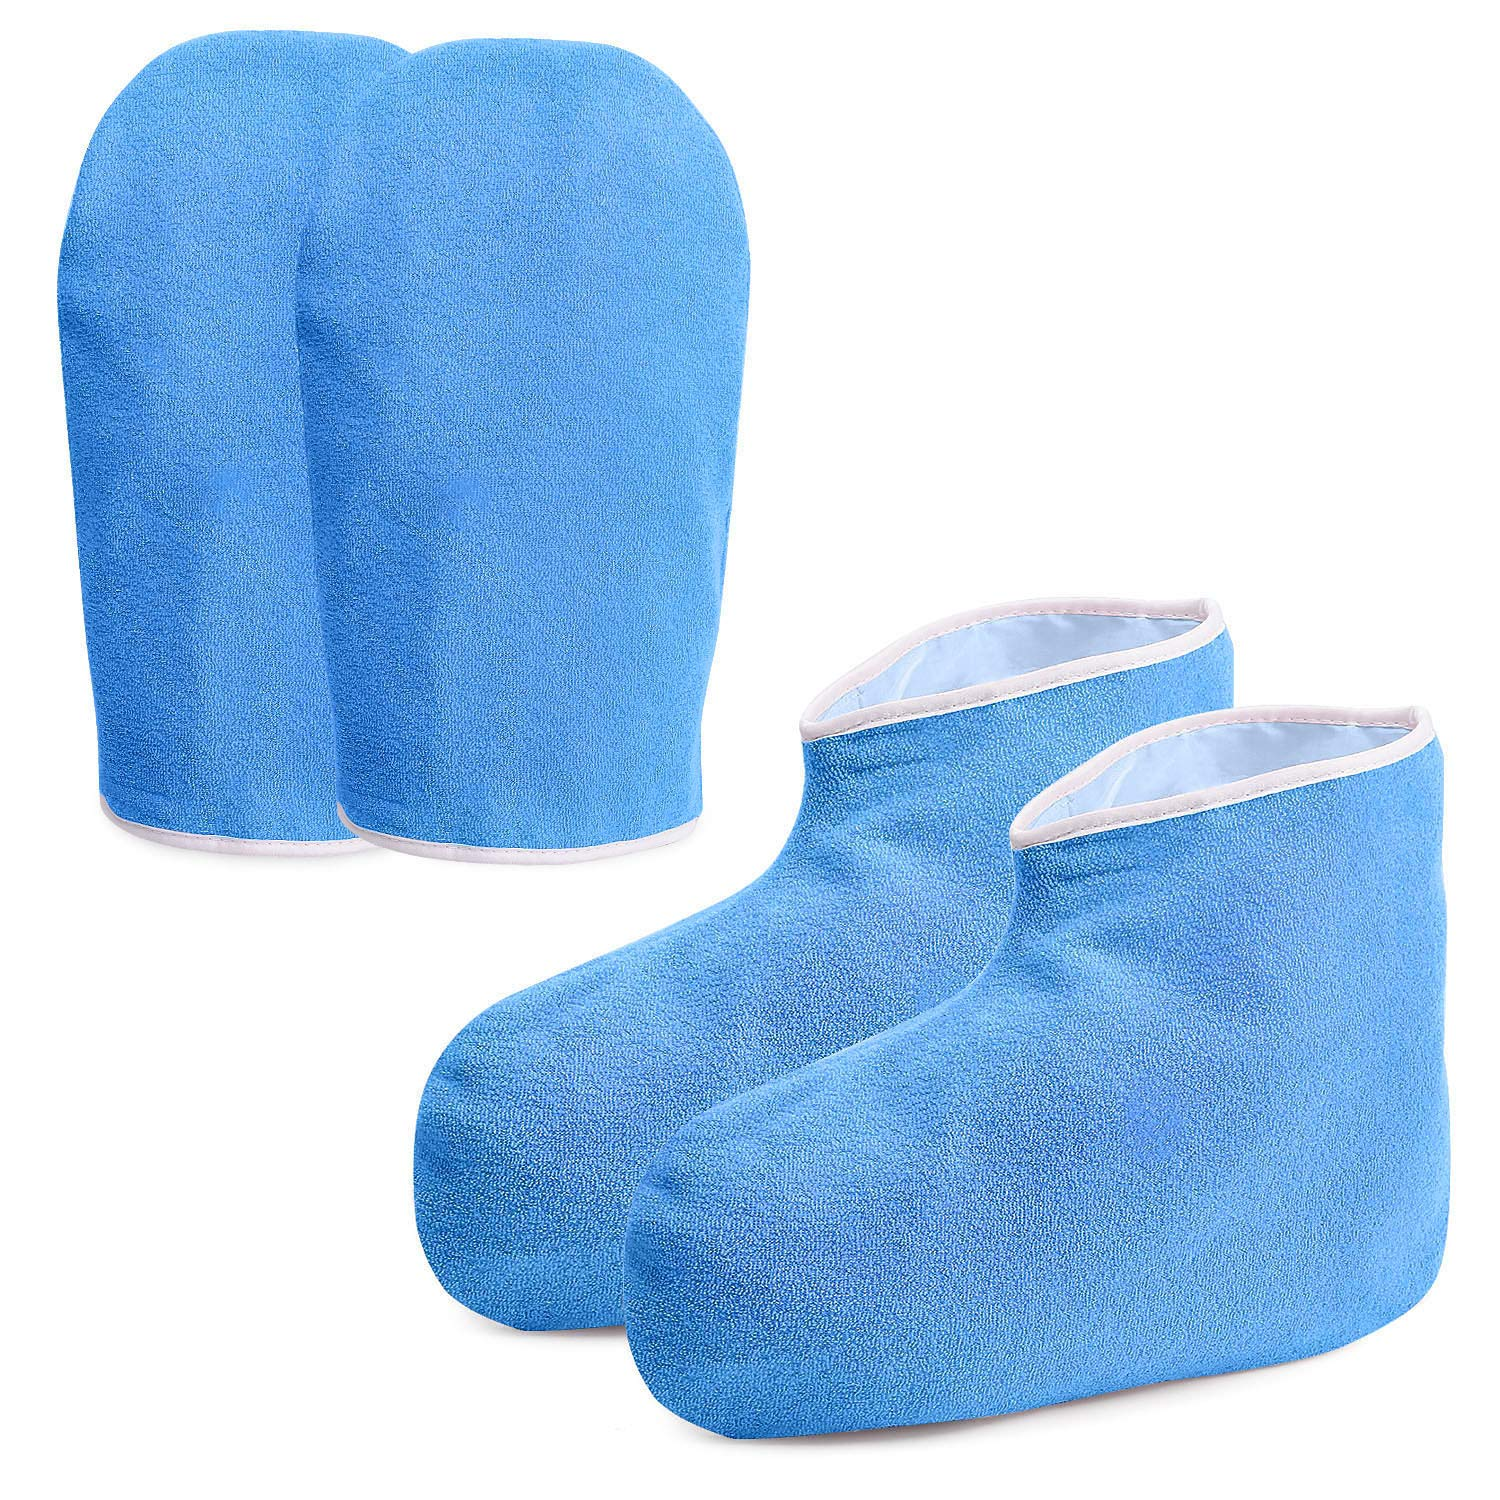 Paraffin Wax Work Gloves & Booties, Wax Bath Hand Treatment Mitts Foot Spa Cover for Women, Thin Heat Therapy Insulated Soft Cotton Mittens Feet Hand Care Set - Blue by Noverlife